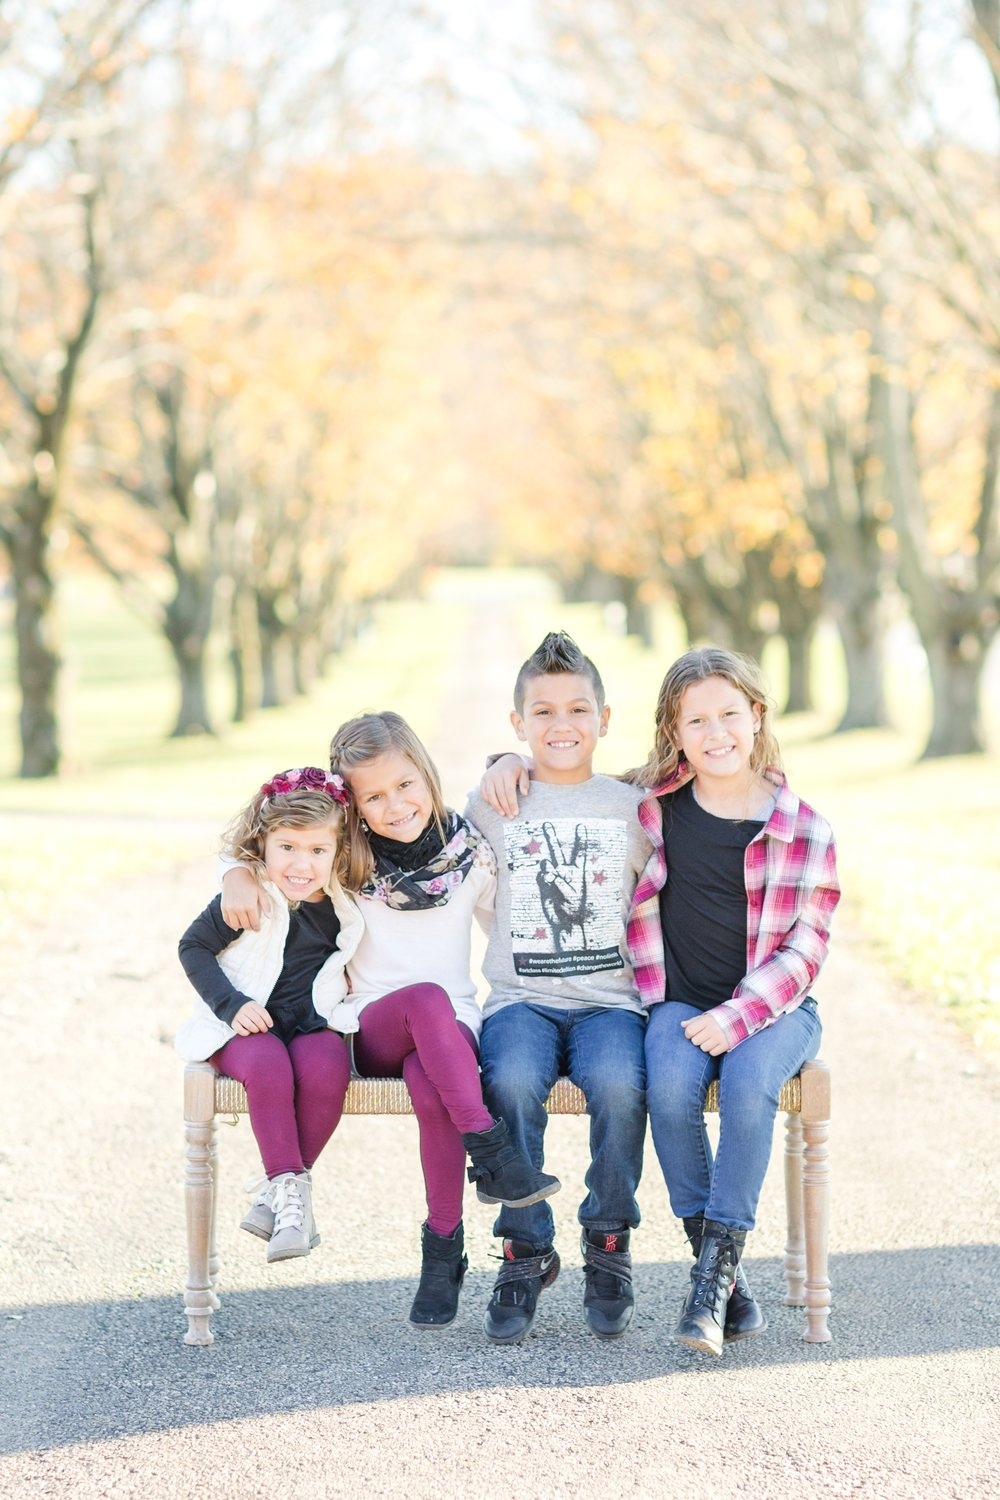 Weddle Family-54_baltimore-maryland-family-photographer-ravens-family-photos-anna-grace-photography-photo.jpg